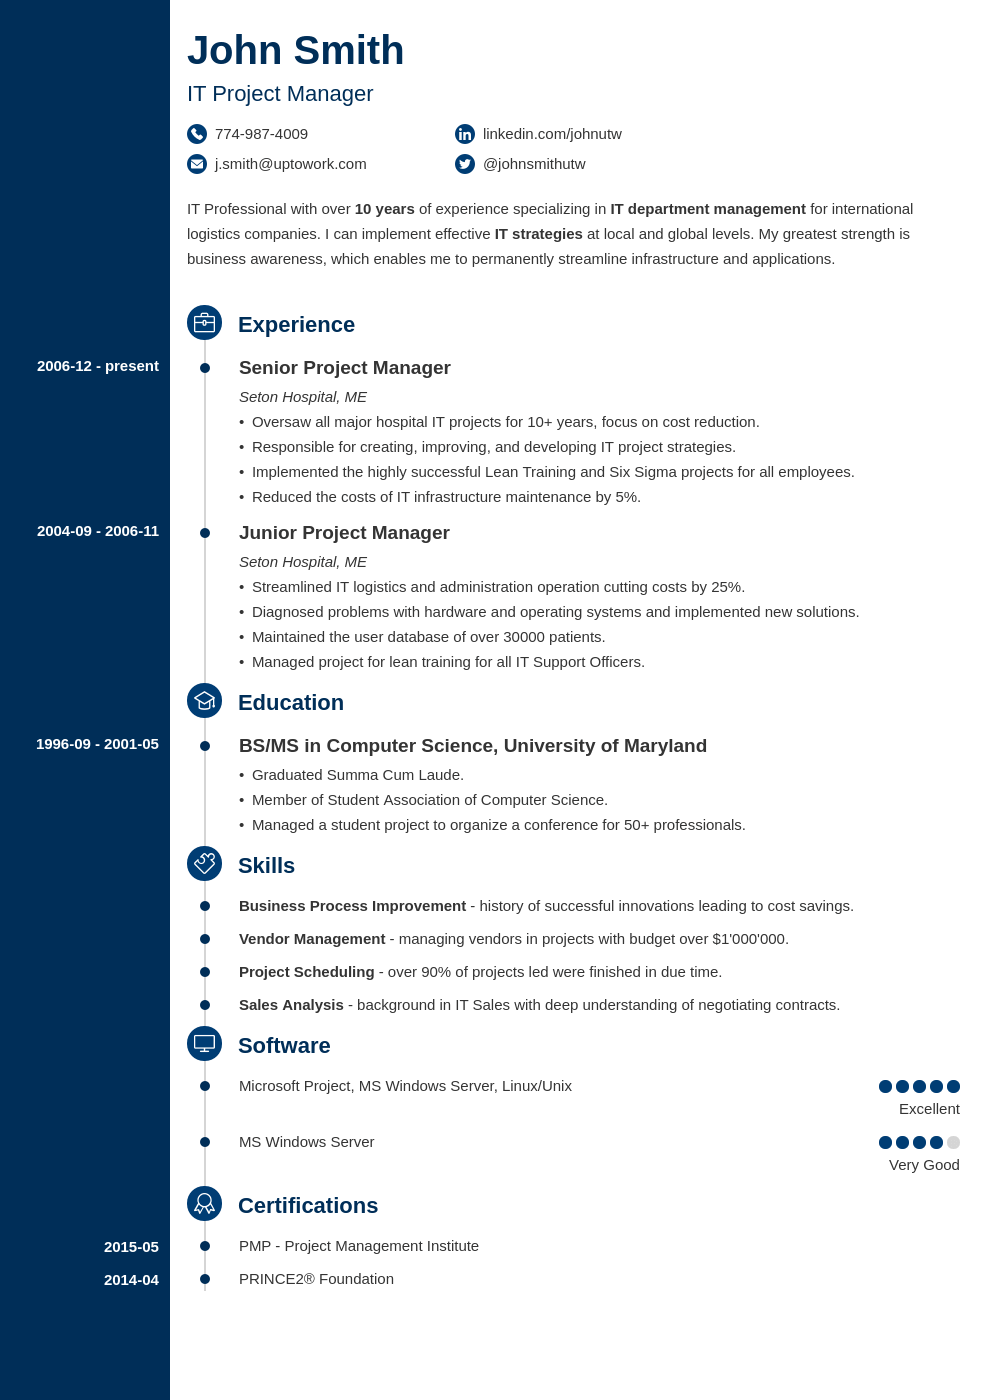 curriculum vitae cv format download